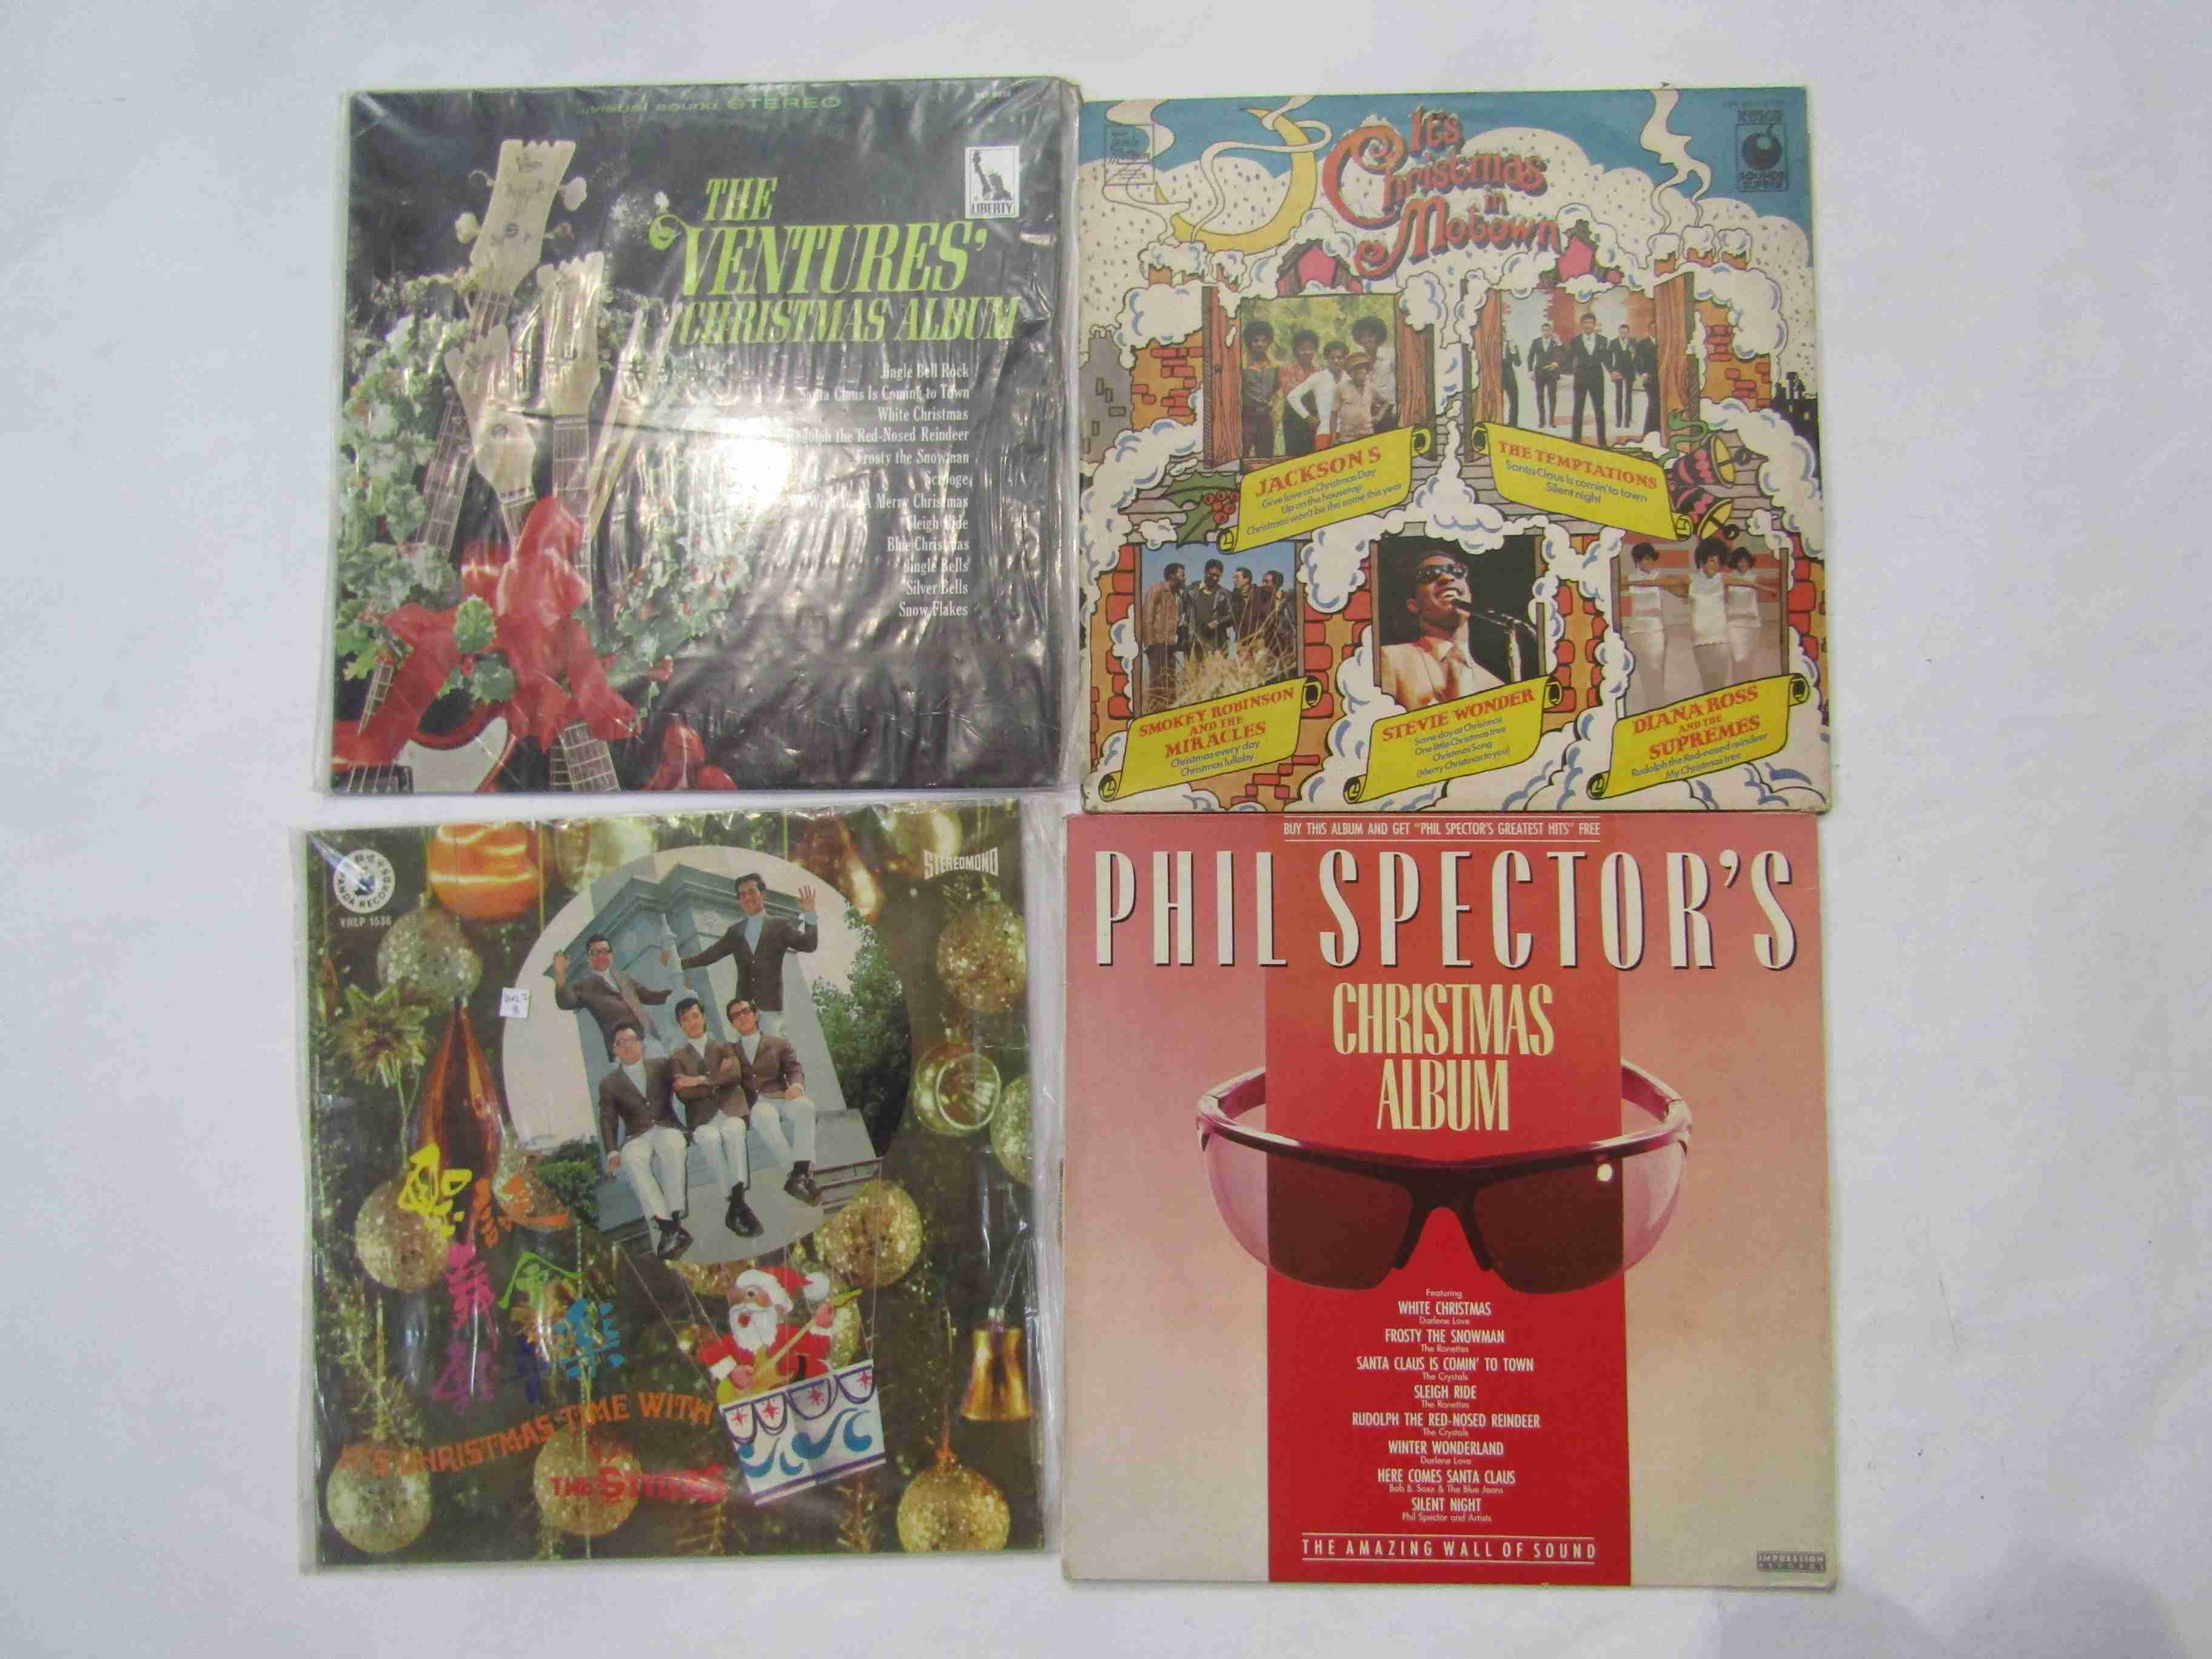 Four Christmas LPs to include 'It's Christmas Time With The Stylers',